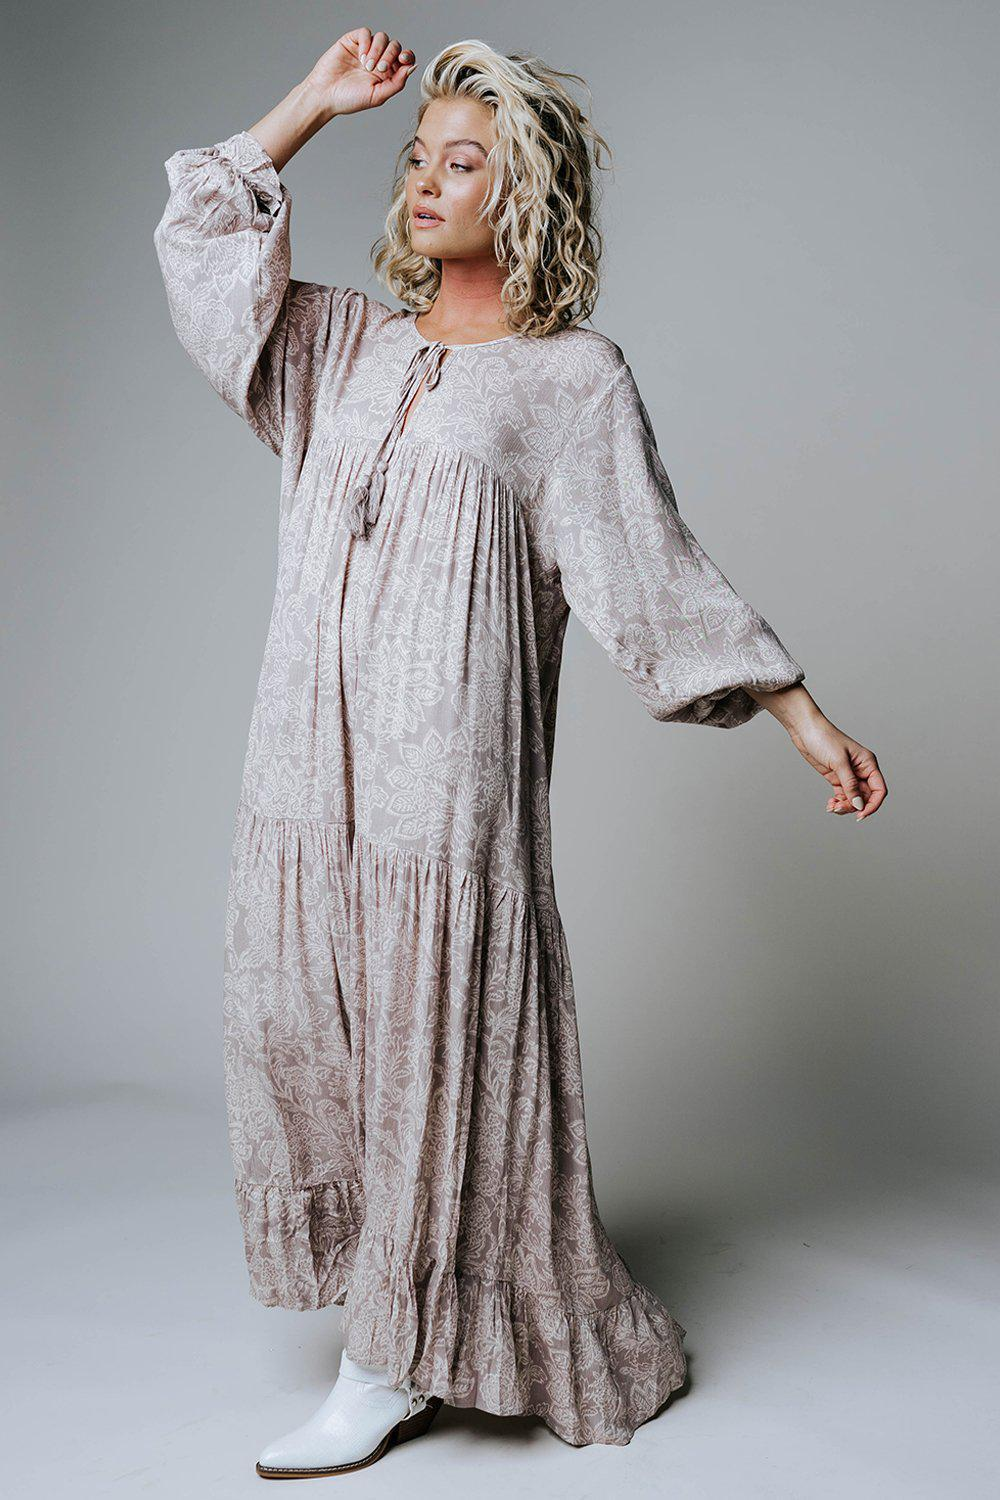 Melrose Avenue Paisley Maxi Dress-Dress-n/a-S-Clad & Cloth